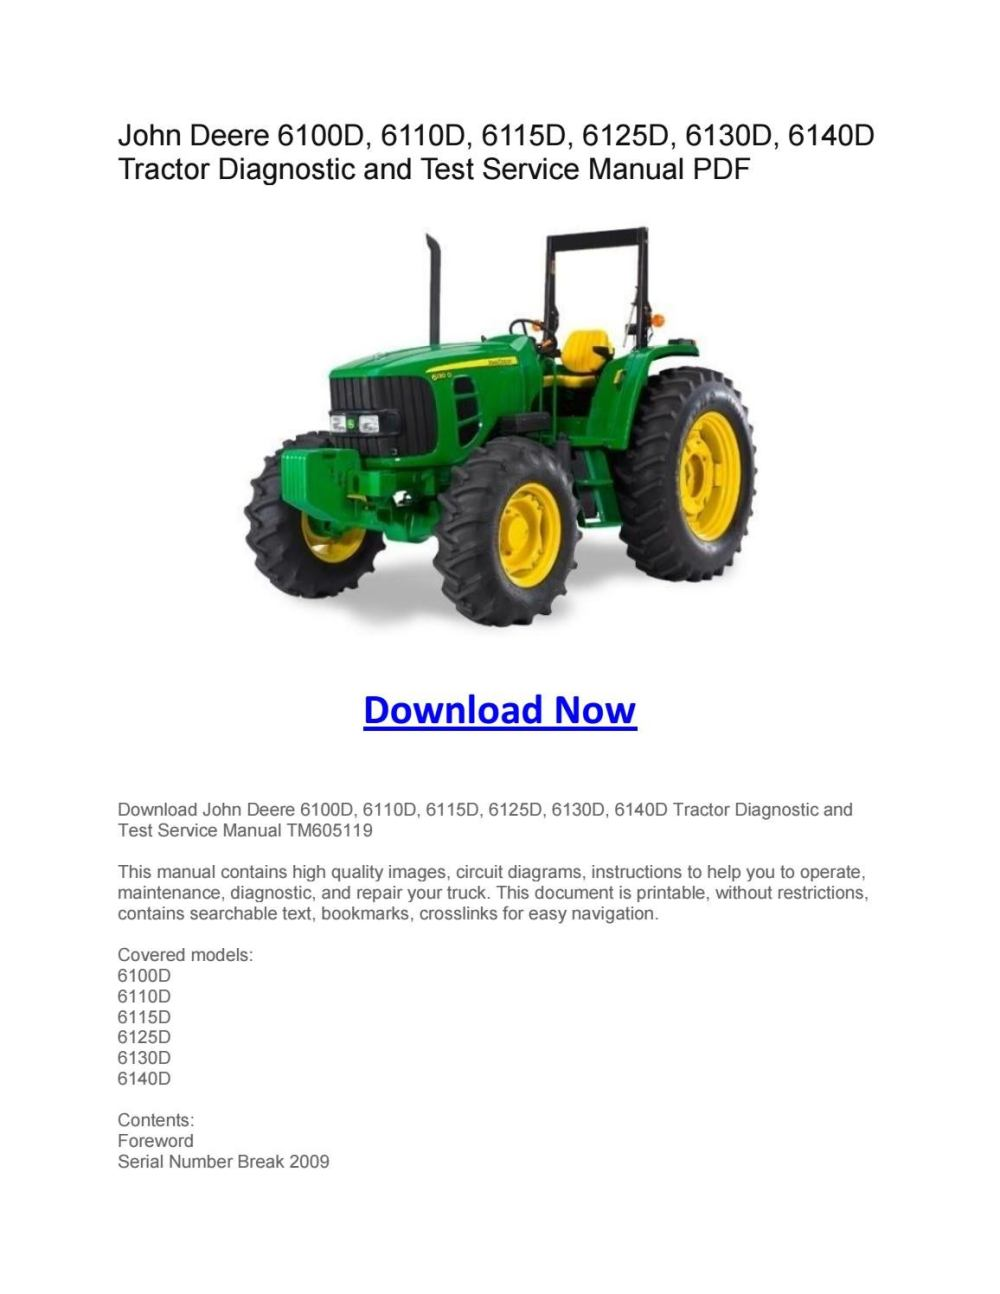 medium resolution of john deere 6100d 6110d 6115d 6125d 6130d 6140d tractor diagnostic and test service manual pdf by larry sprouse issuu